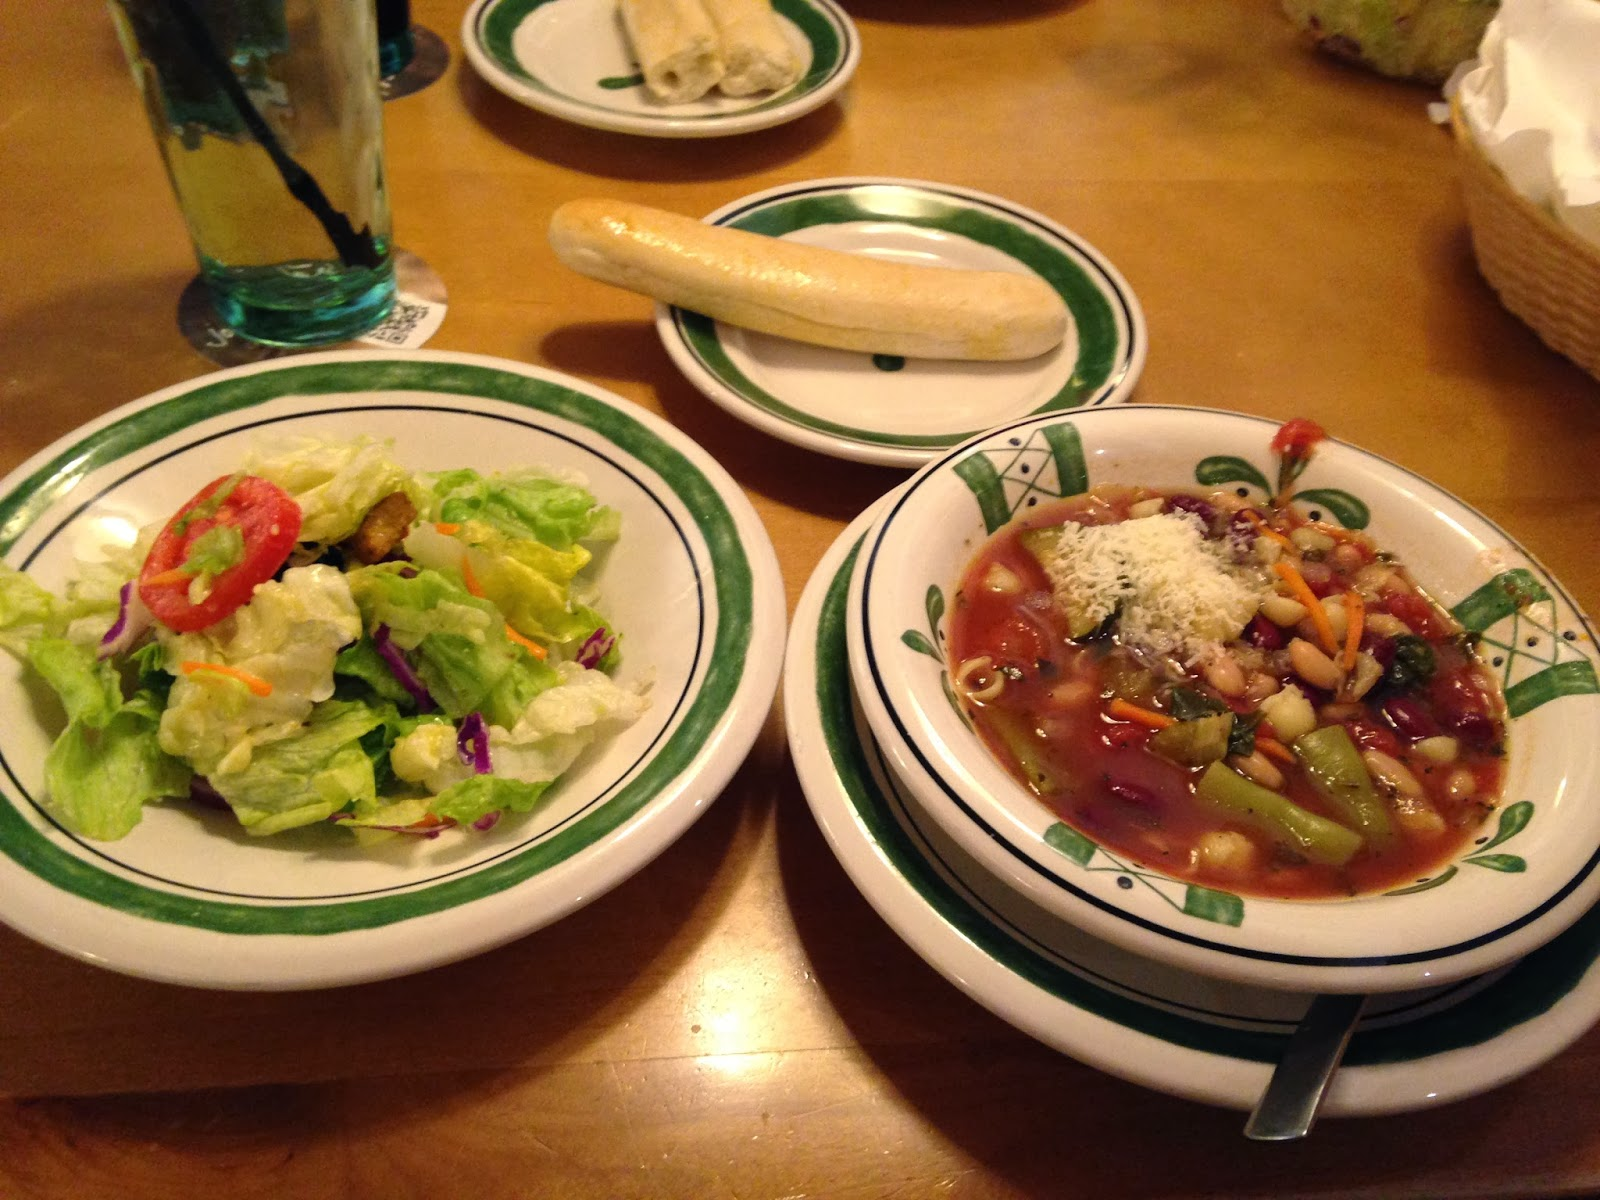 Life on food syracuse and wiaw for Soup salad and breadsticks olive garden